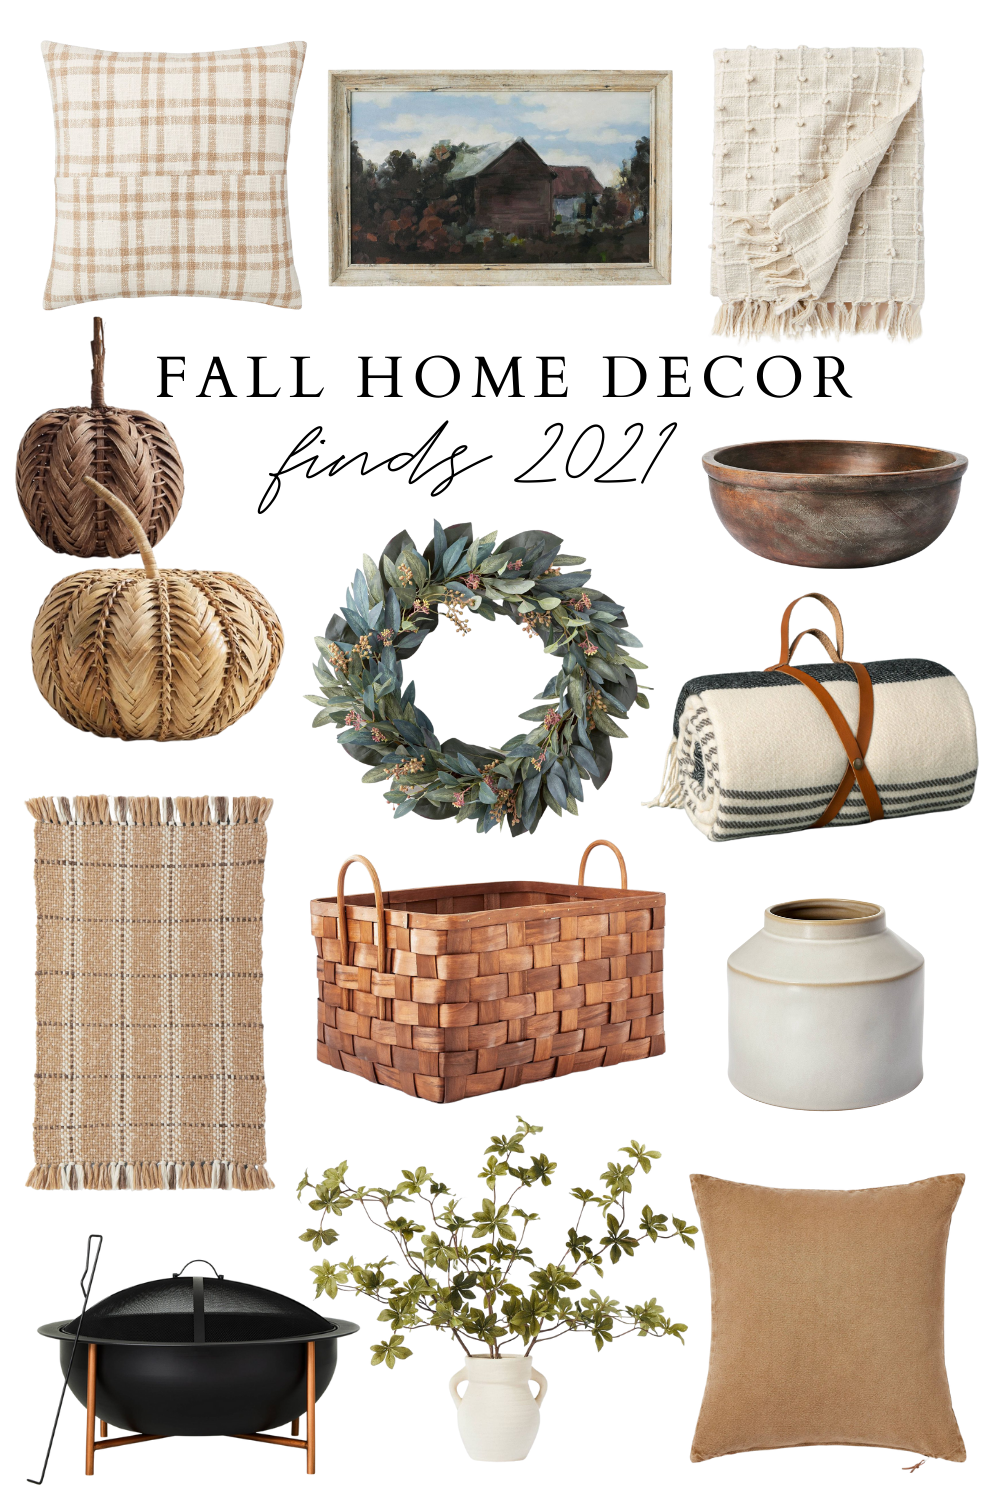 Fall Home Decor Finds 2021